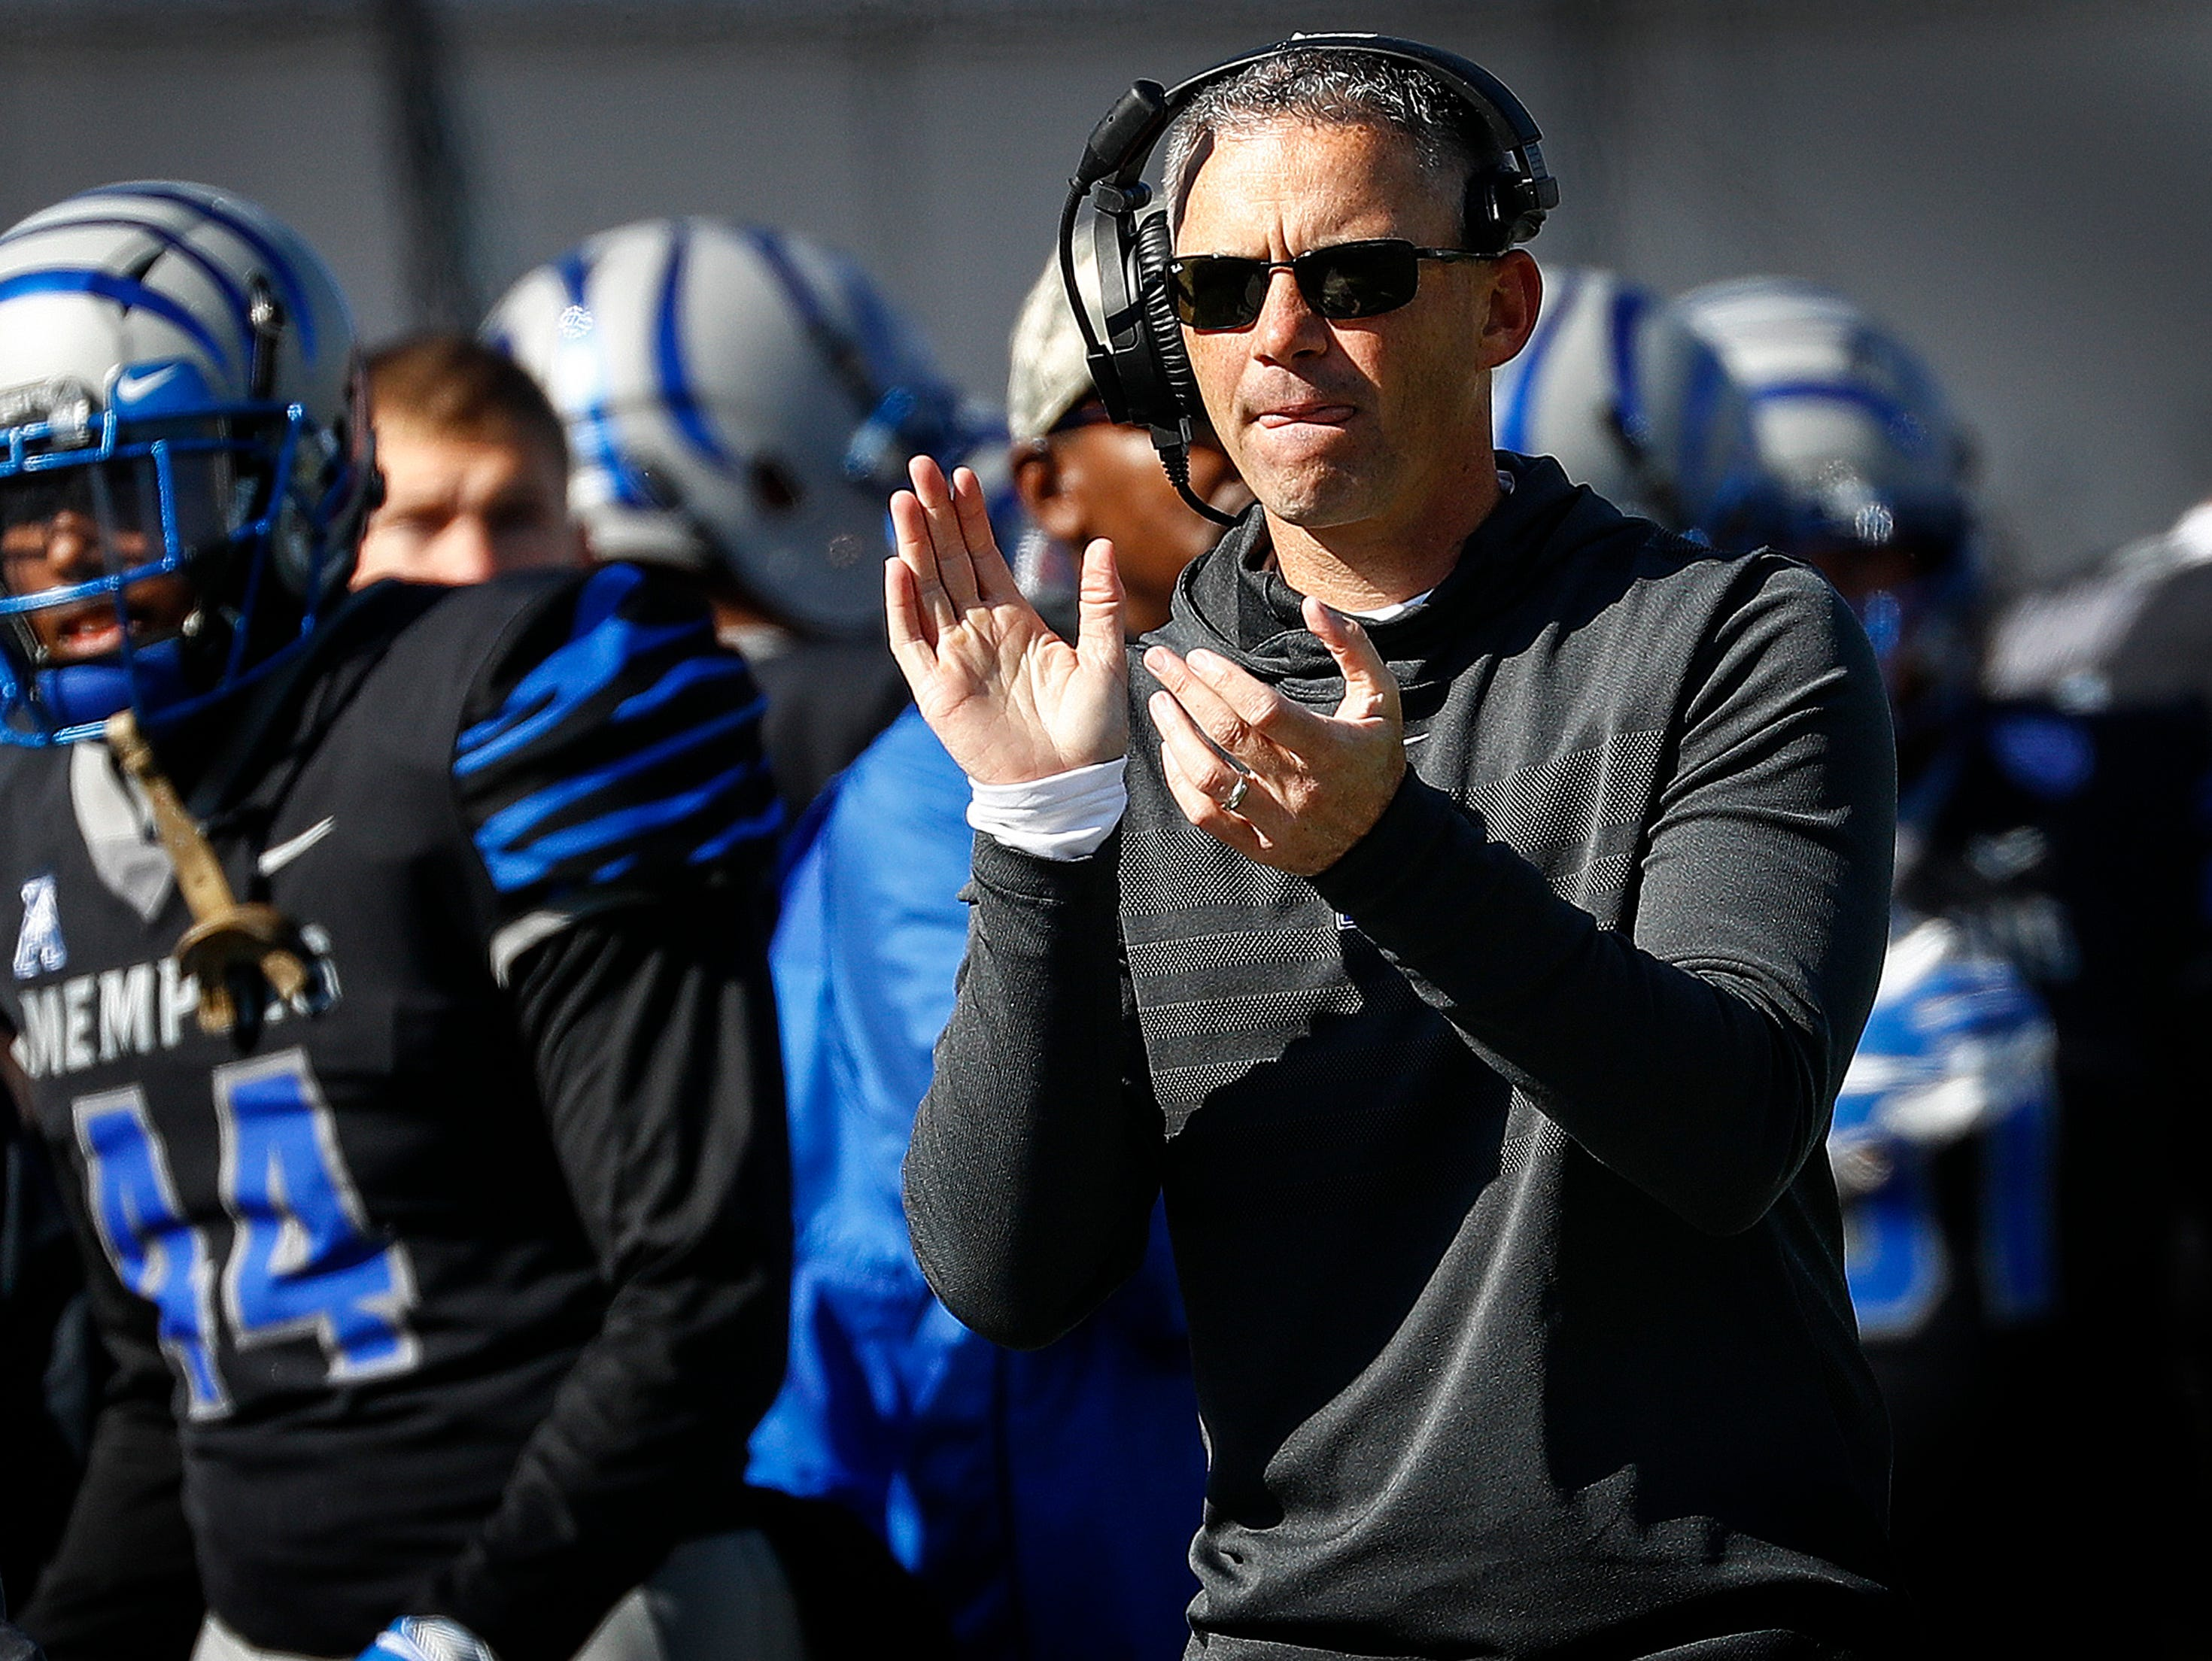 Mike Norvell is staying at Memphis, and one tweet gave Tiger fans the 'spark' they needed